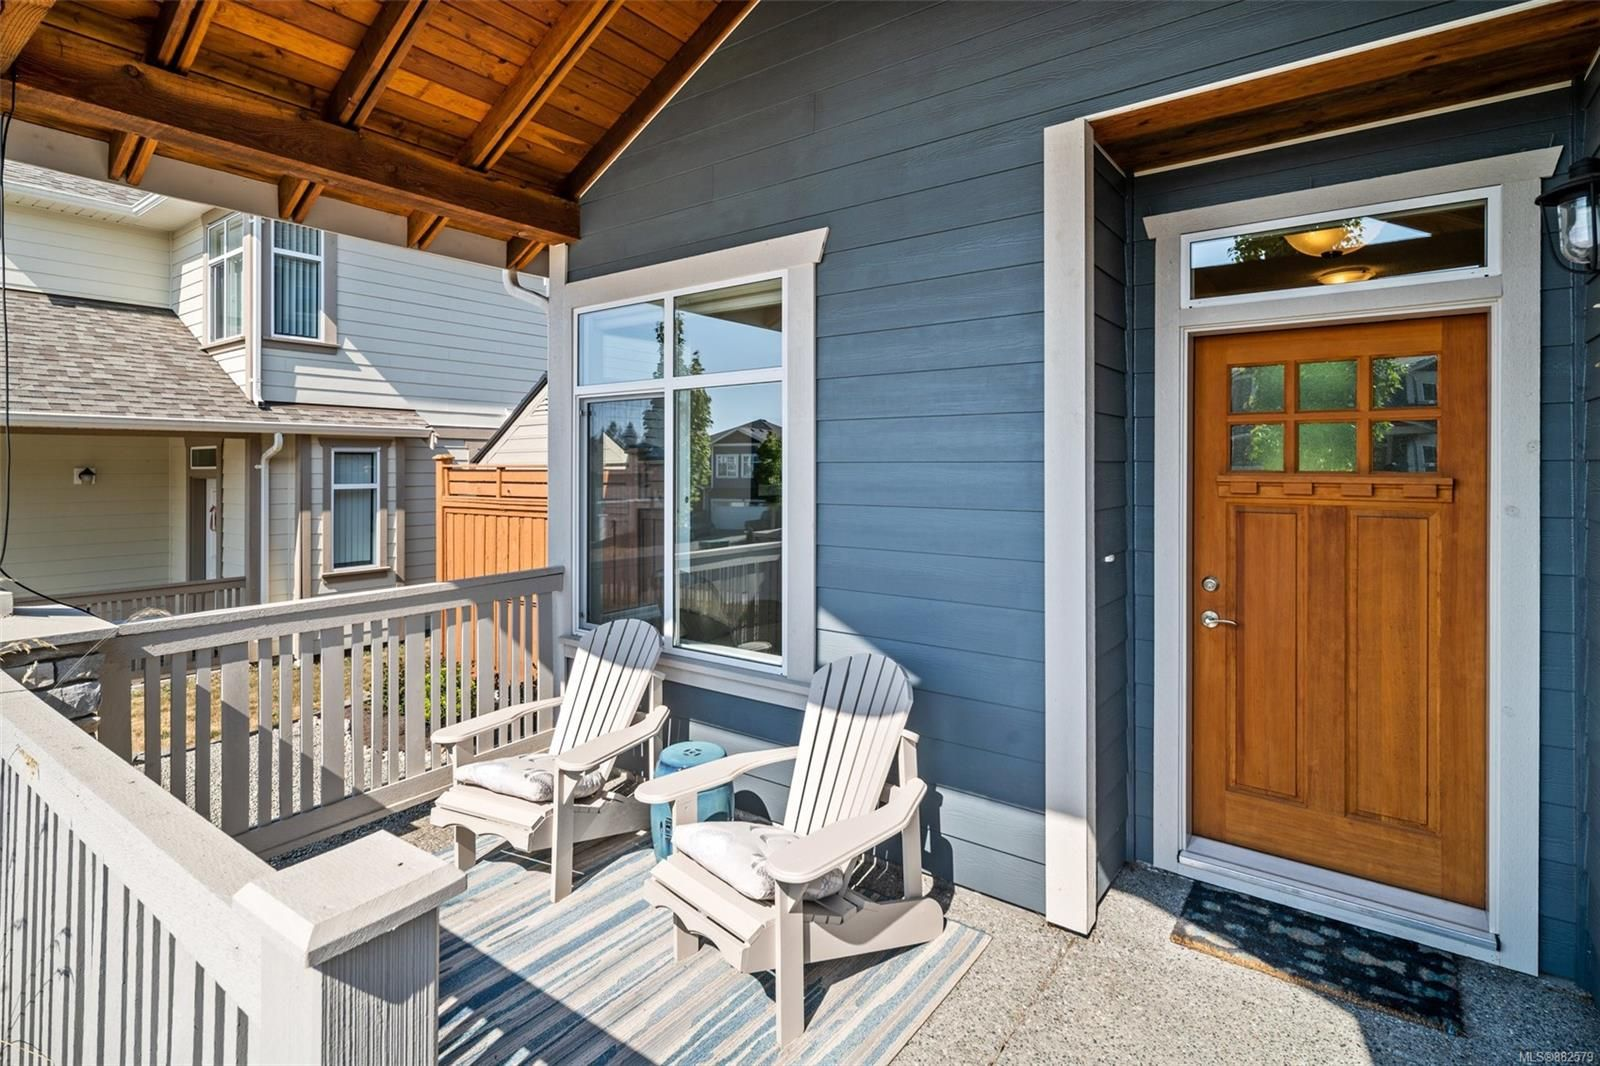 Photo 4: Photos: 2474 Anthony Pl in : Sk Sunriver House for sale (Sooke)  : MLS®# 882579